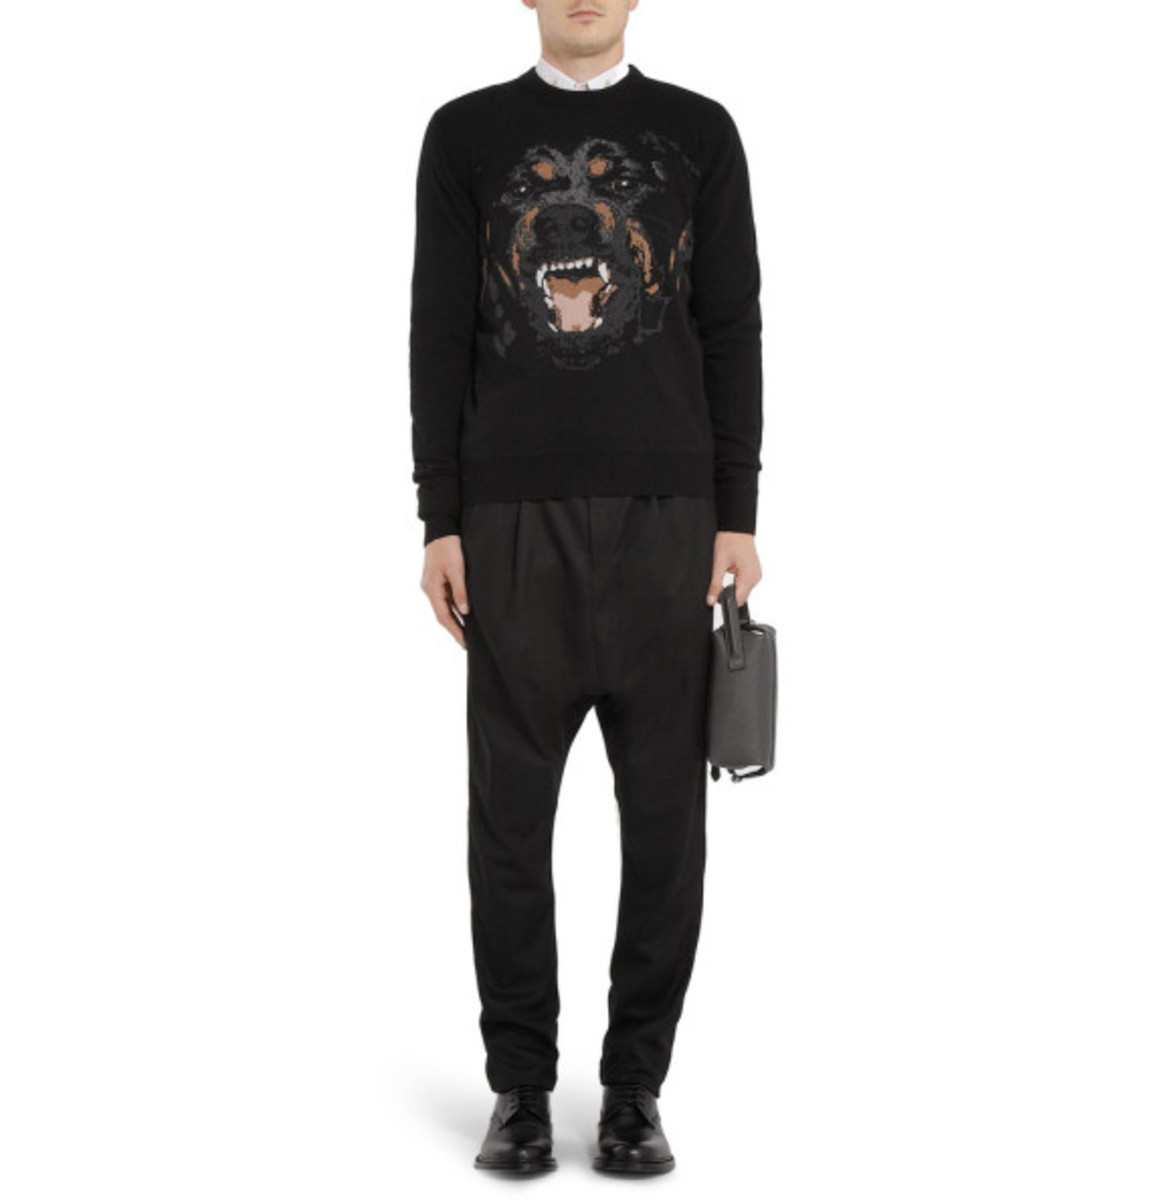 givenchy-rottweiler-intarsia-sweater-06